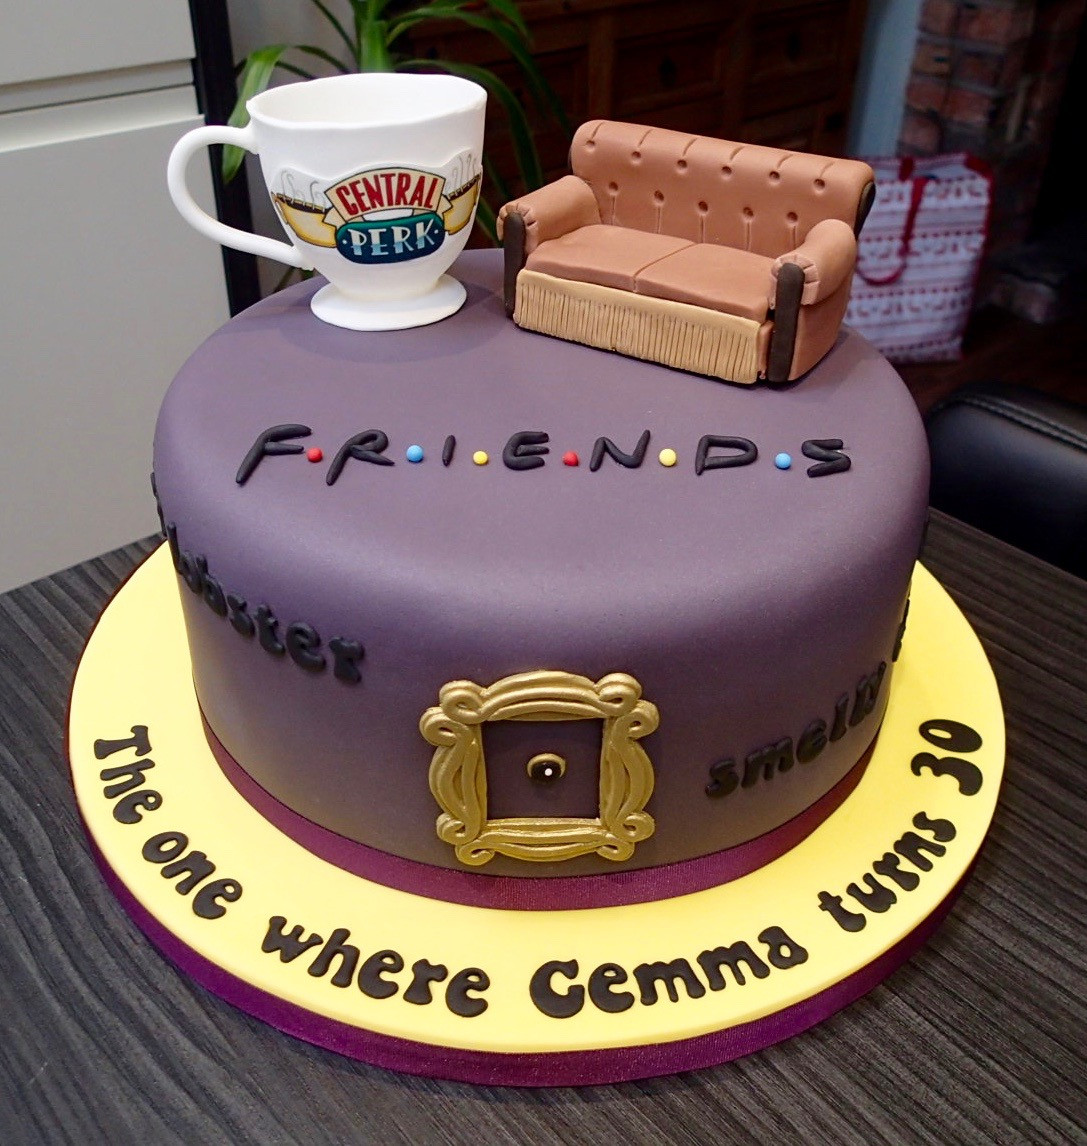 Best ideas about 30th Birthday Cake Ideas . Save or Pin Simple and Elegant 30th Birthday Cake Ideas Now.